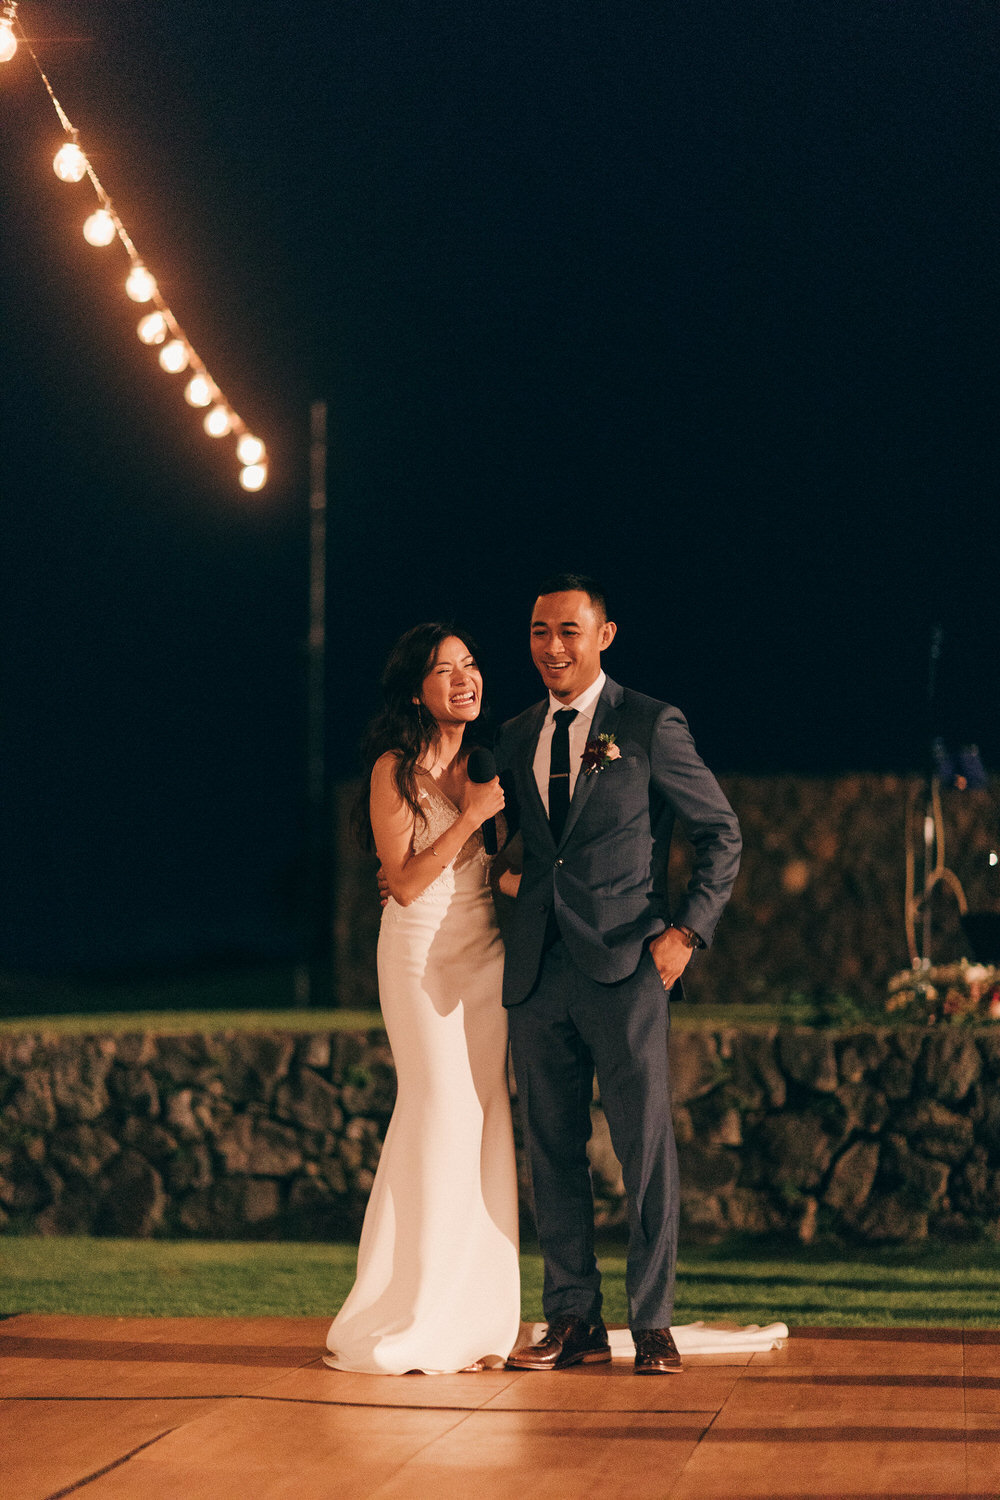 fairmont-orchid-resort-kona-hawaii-wedding-117